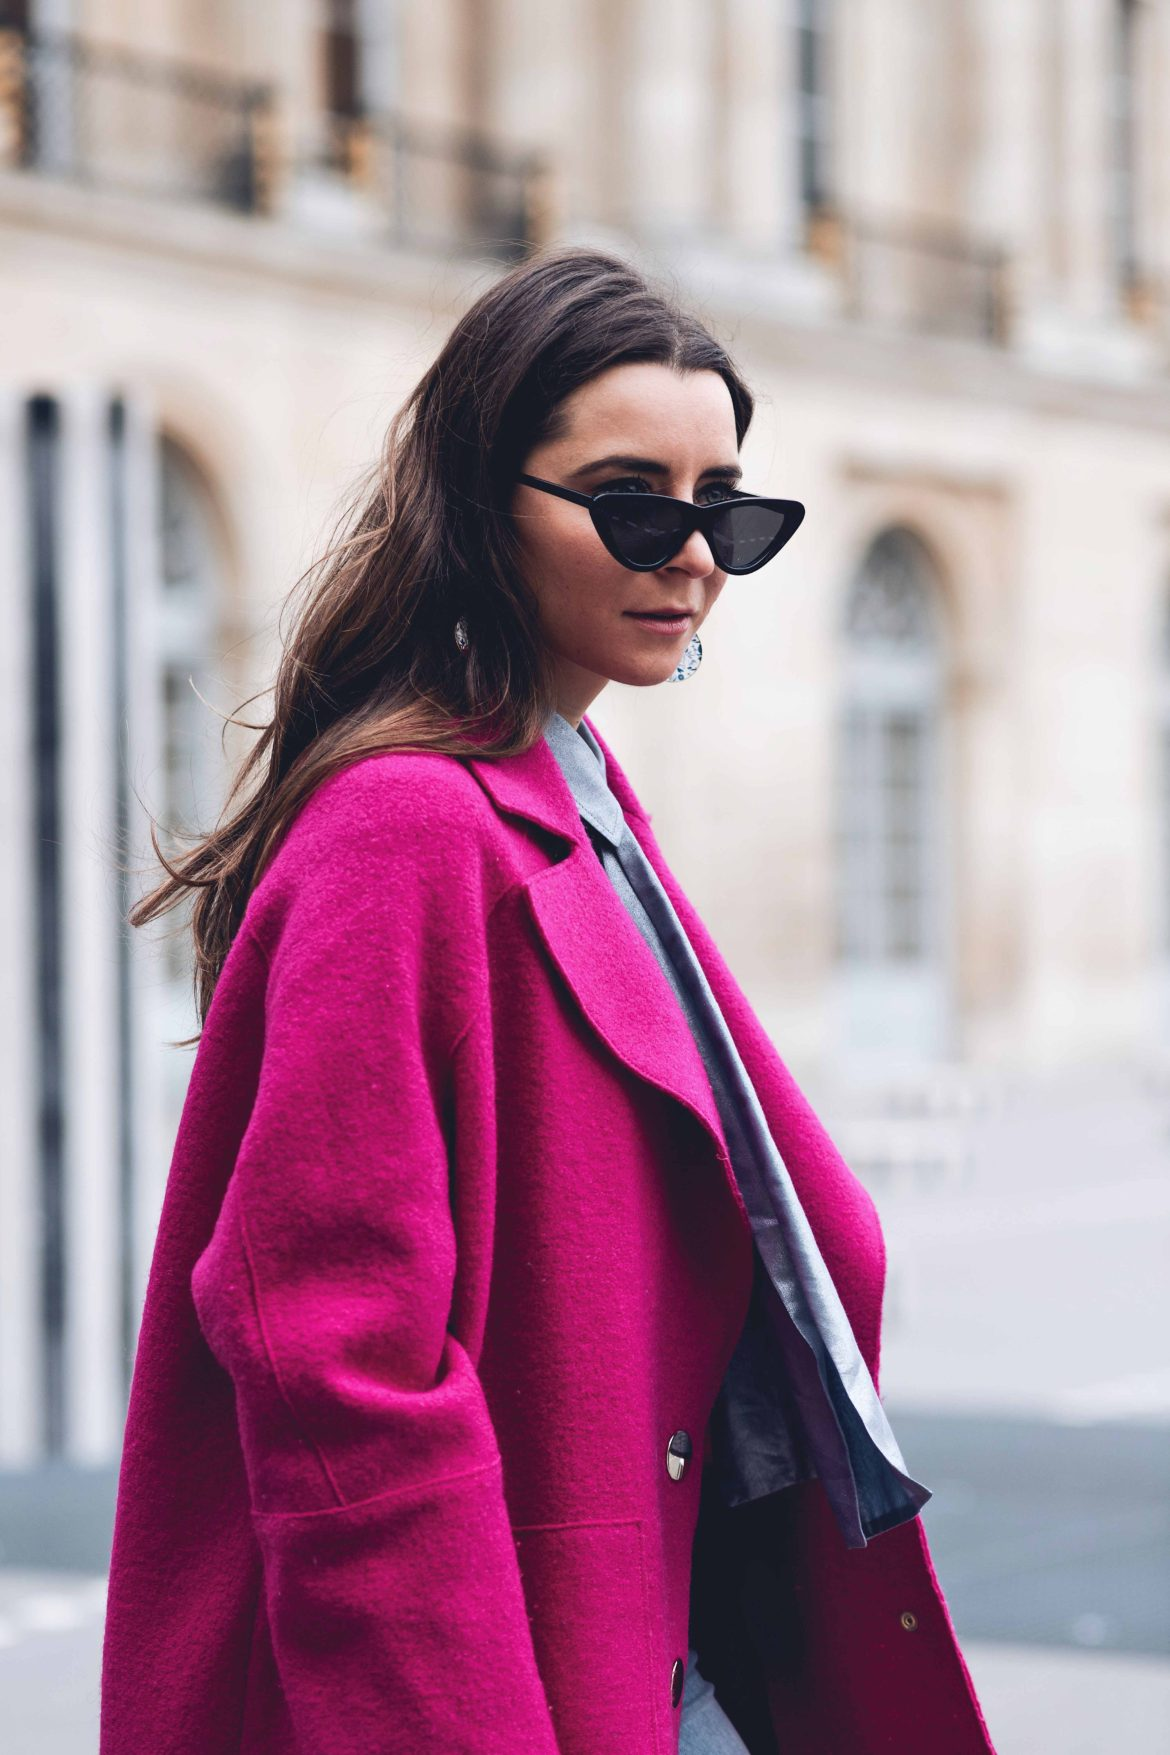 Best Street Style Paris Fashion Week Mars 2018 of Julia Comil / French Fashion Blogger in Los Angeles - Outfit for John Galliano Fall Winter 2018 2019 show - Pink Tara Jarmon Coat and Blouse - Strathberry Bag - The Kooples Denim - Palais Royal